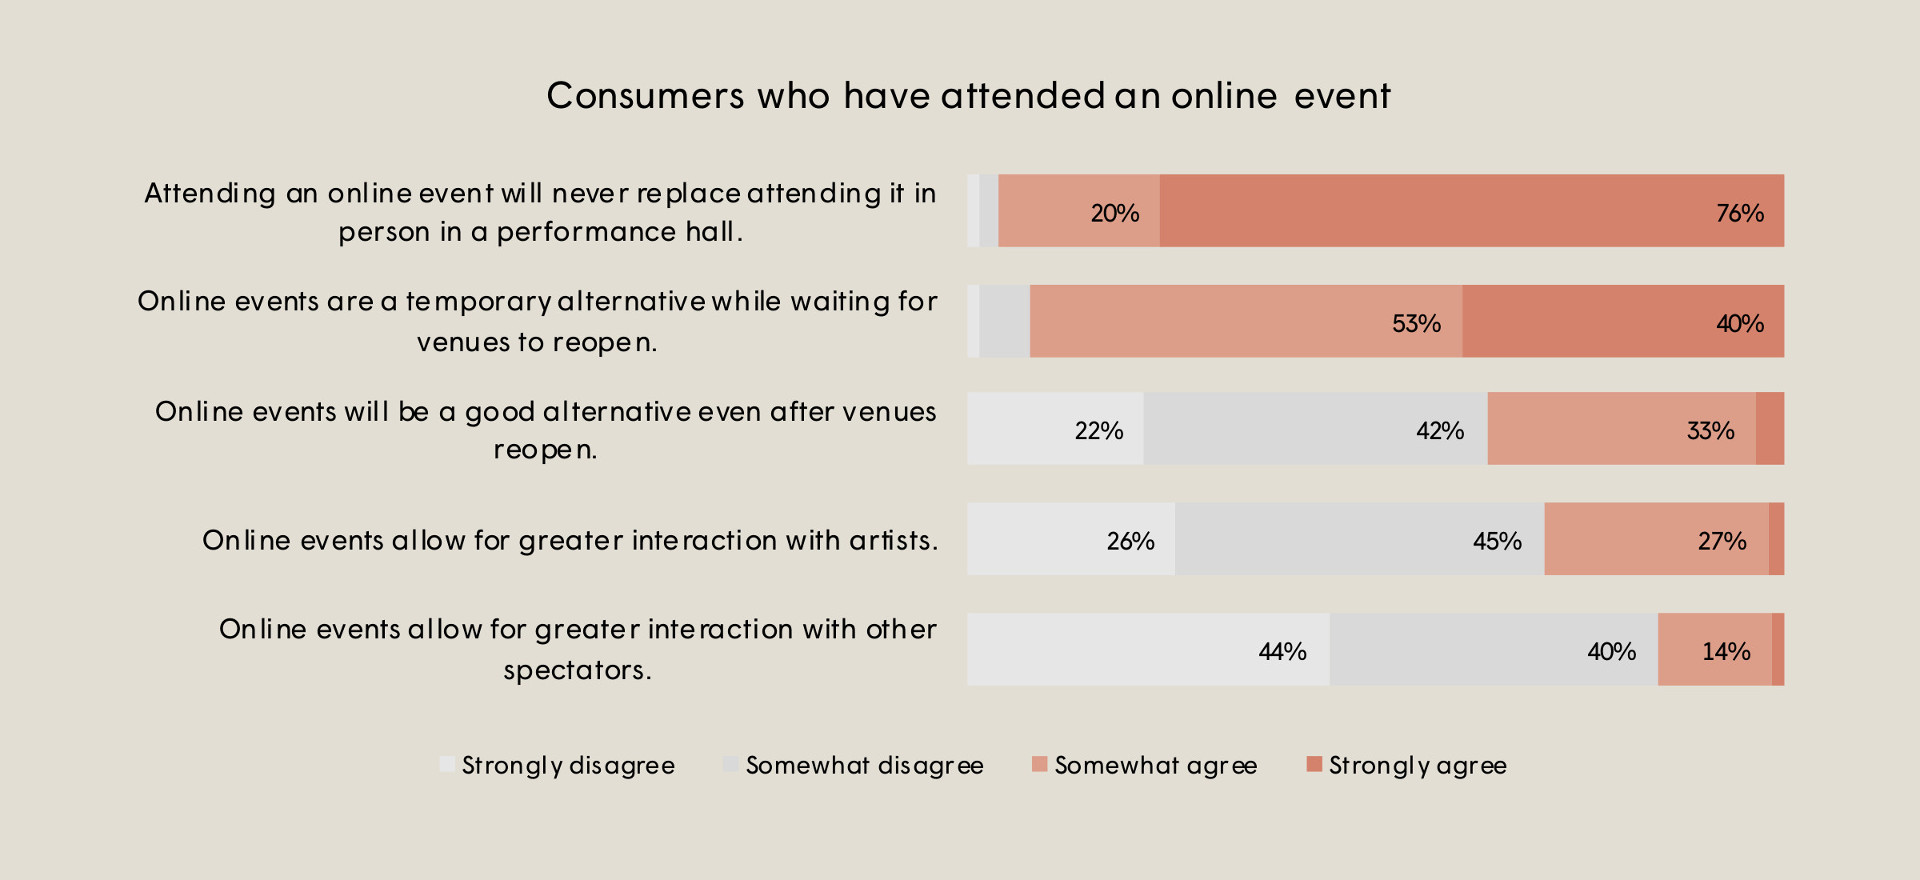 Bar chart on consumers who have attended an online event. 40% strongly agree that online events are temporary alternative. Another 53% somewhat agree.